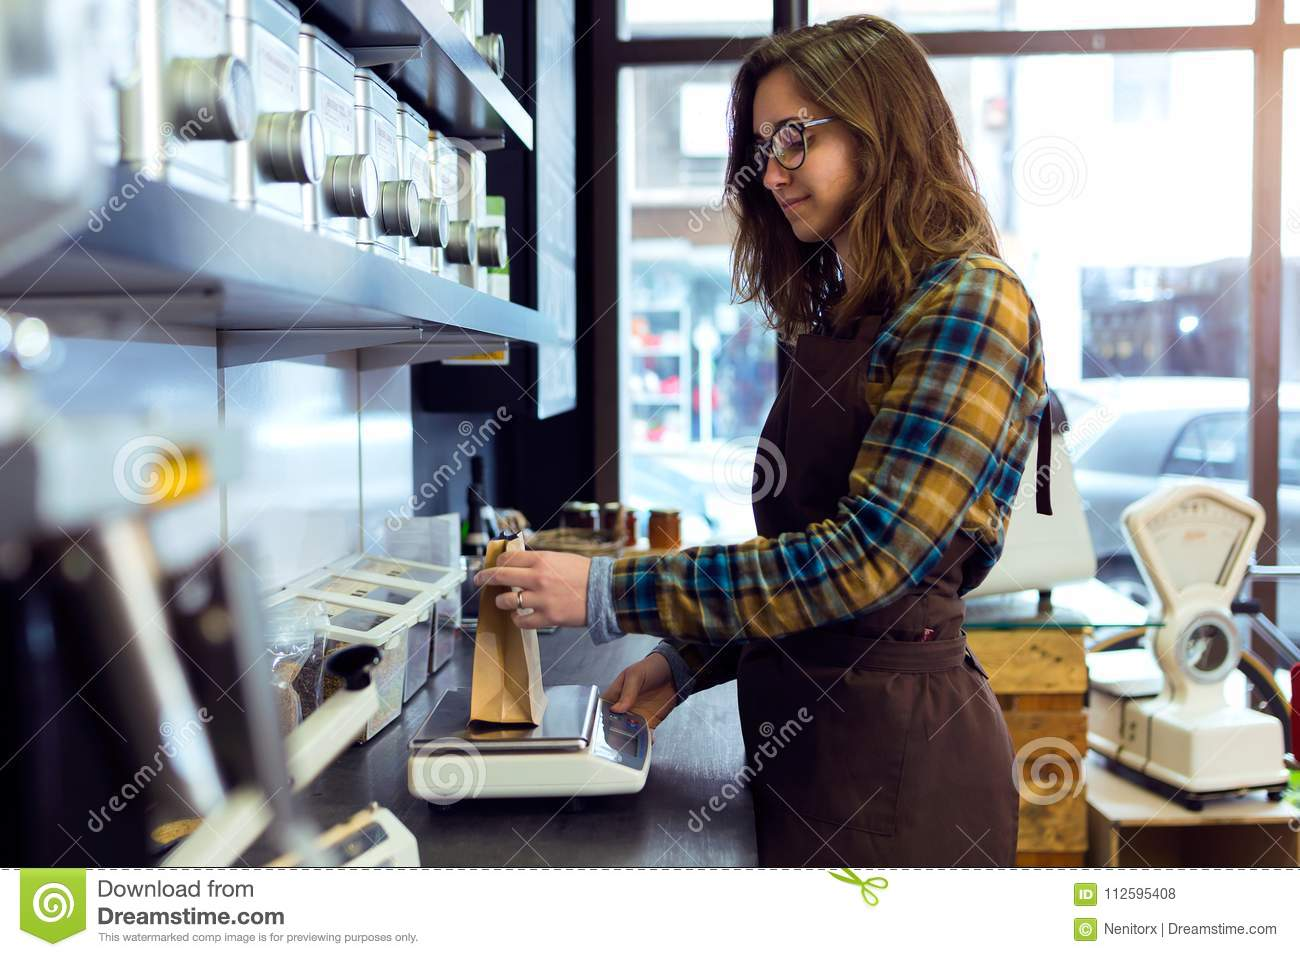 Beautiful young saleswoman weighing coffee beans in a retail store selling coffee.